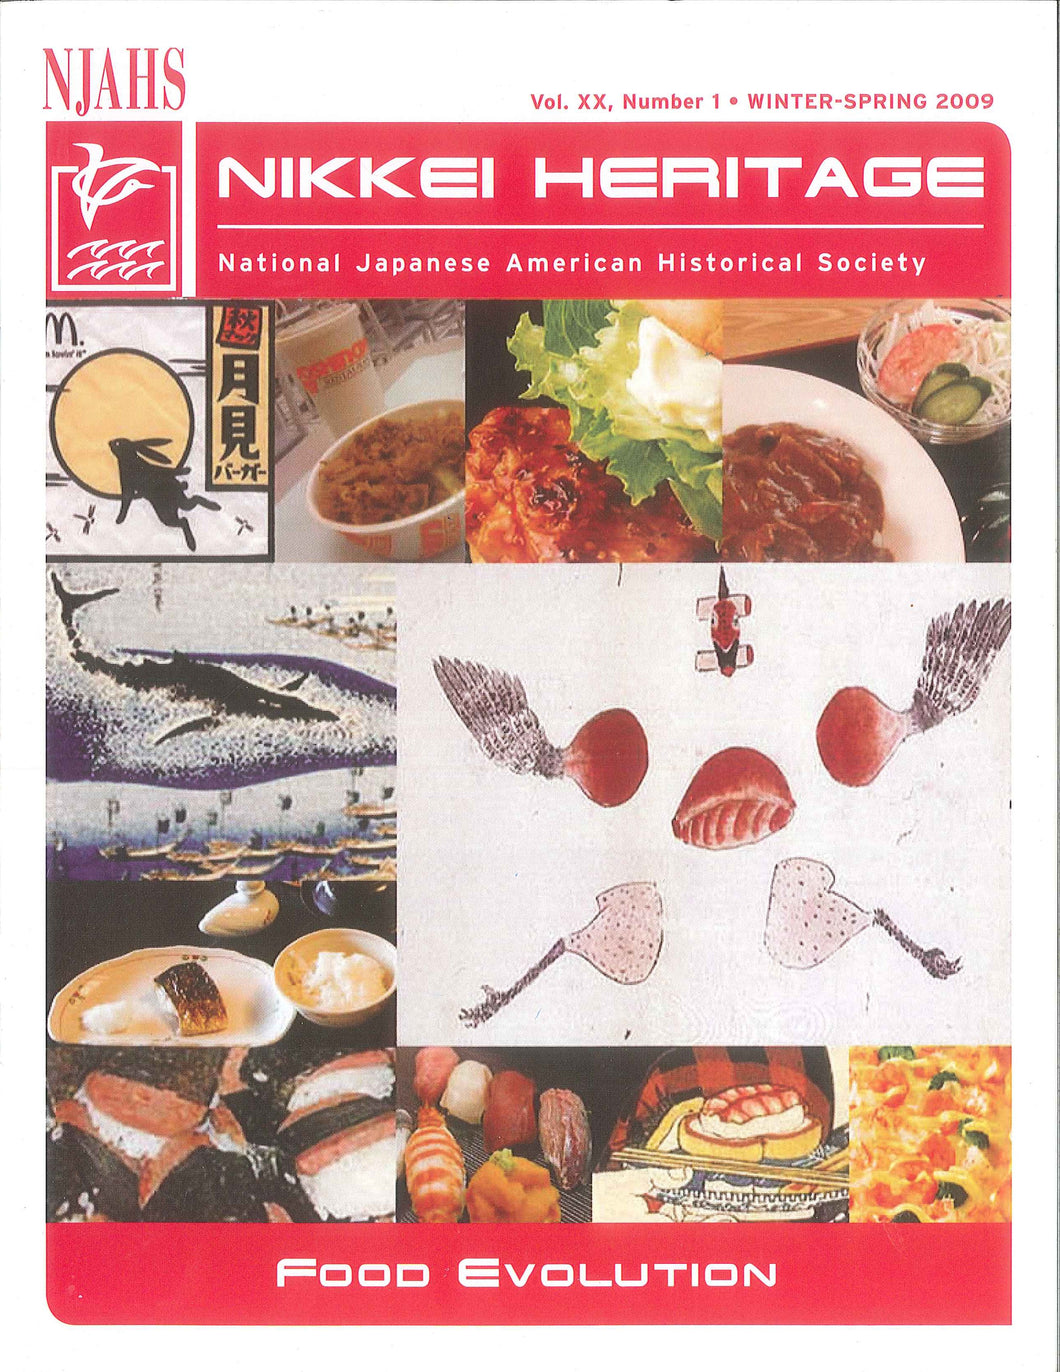 Nikkei Heritage - Food Evolution